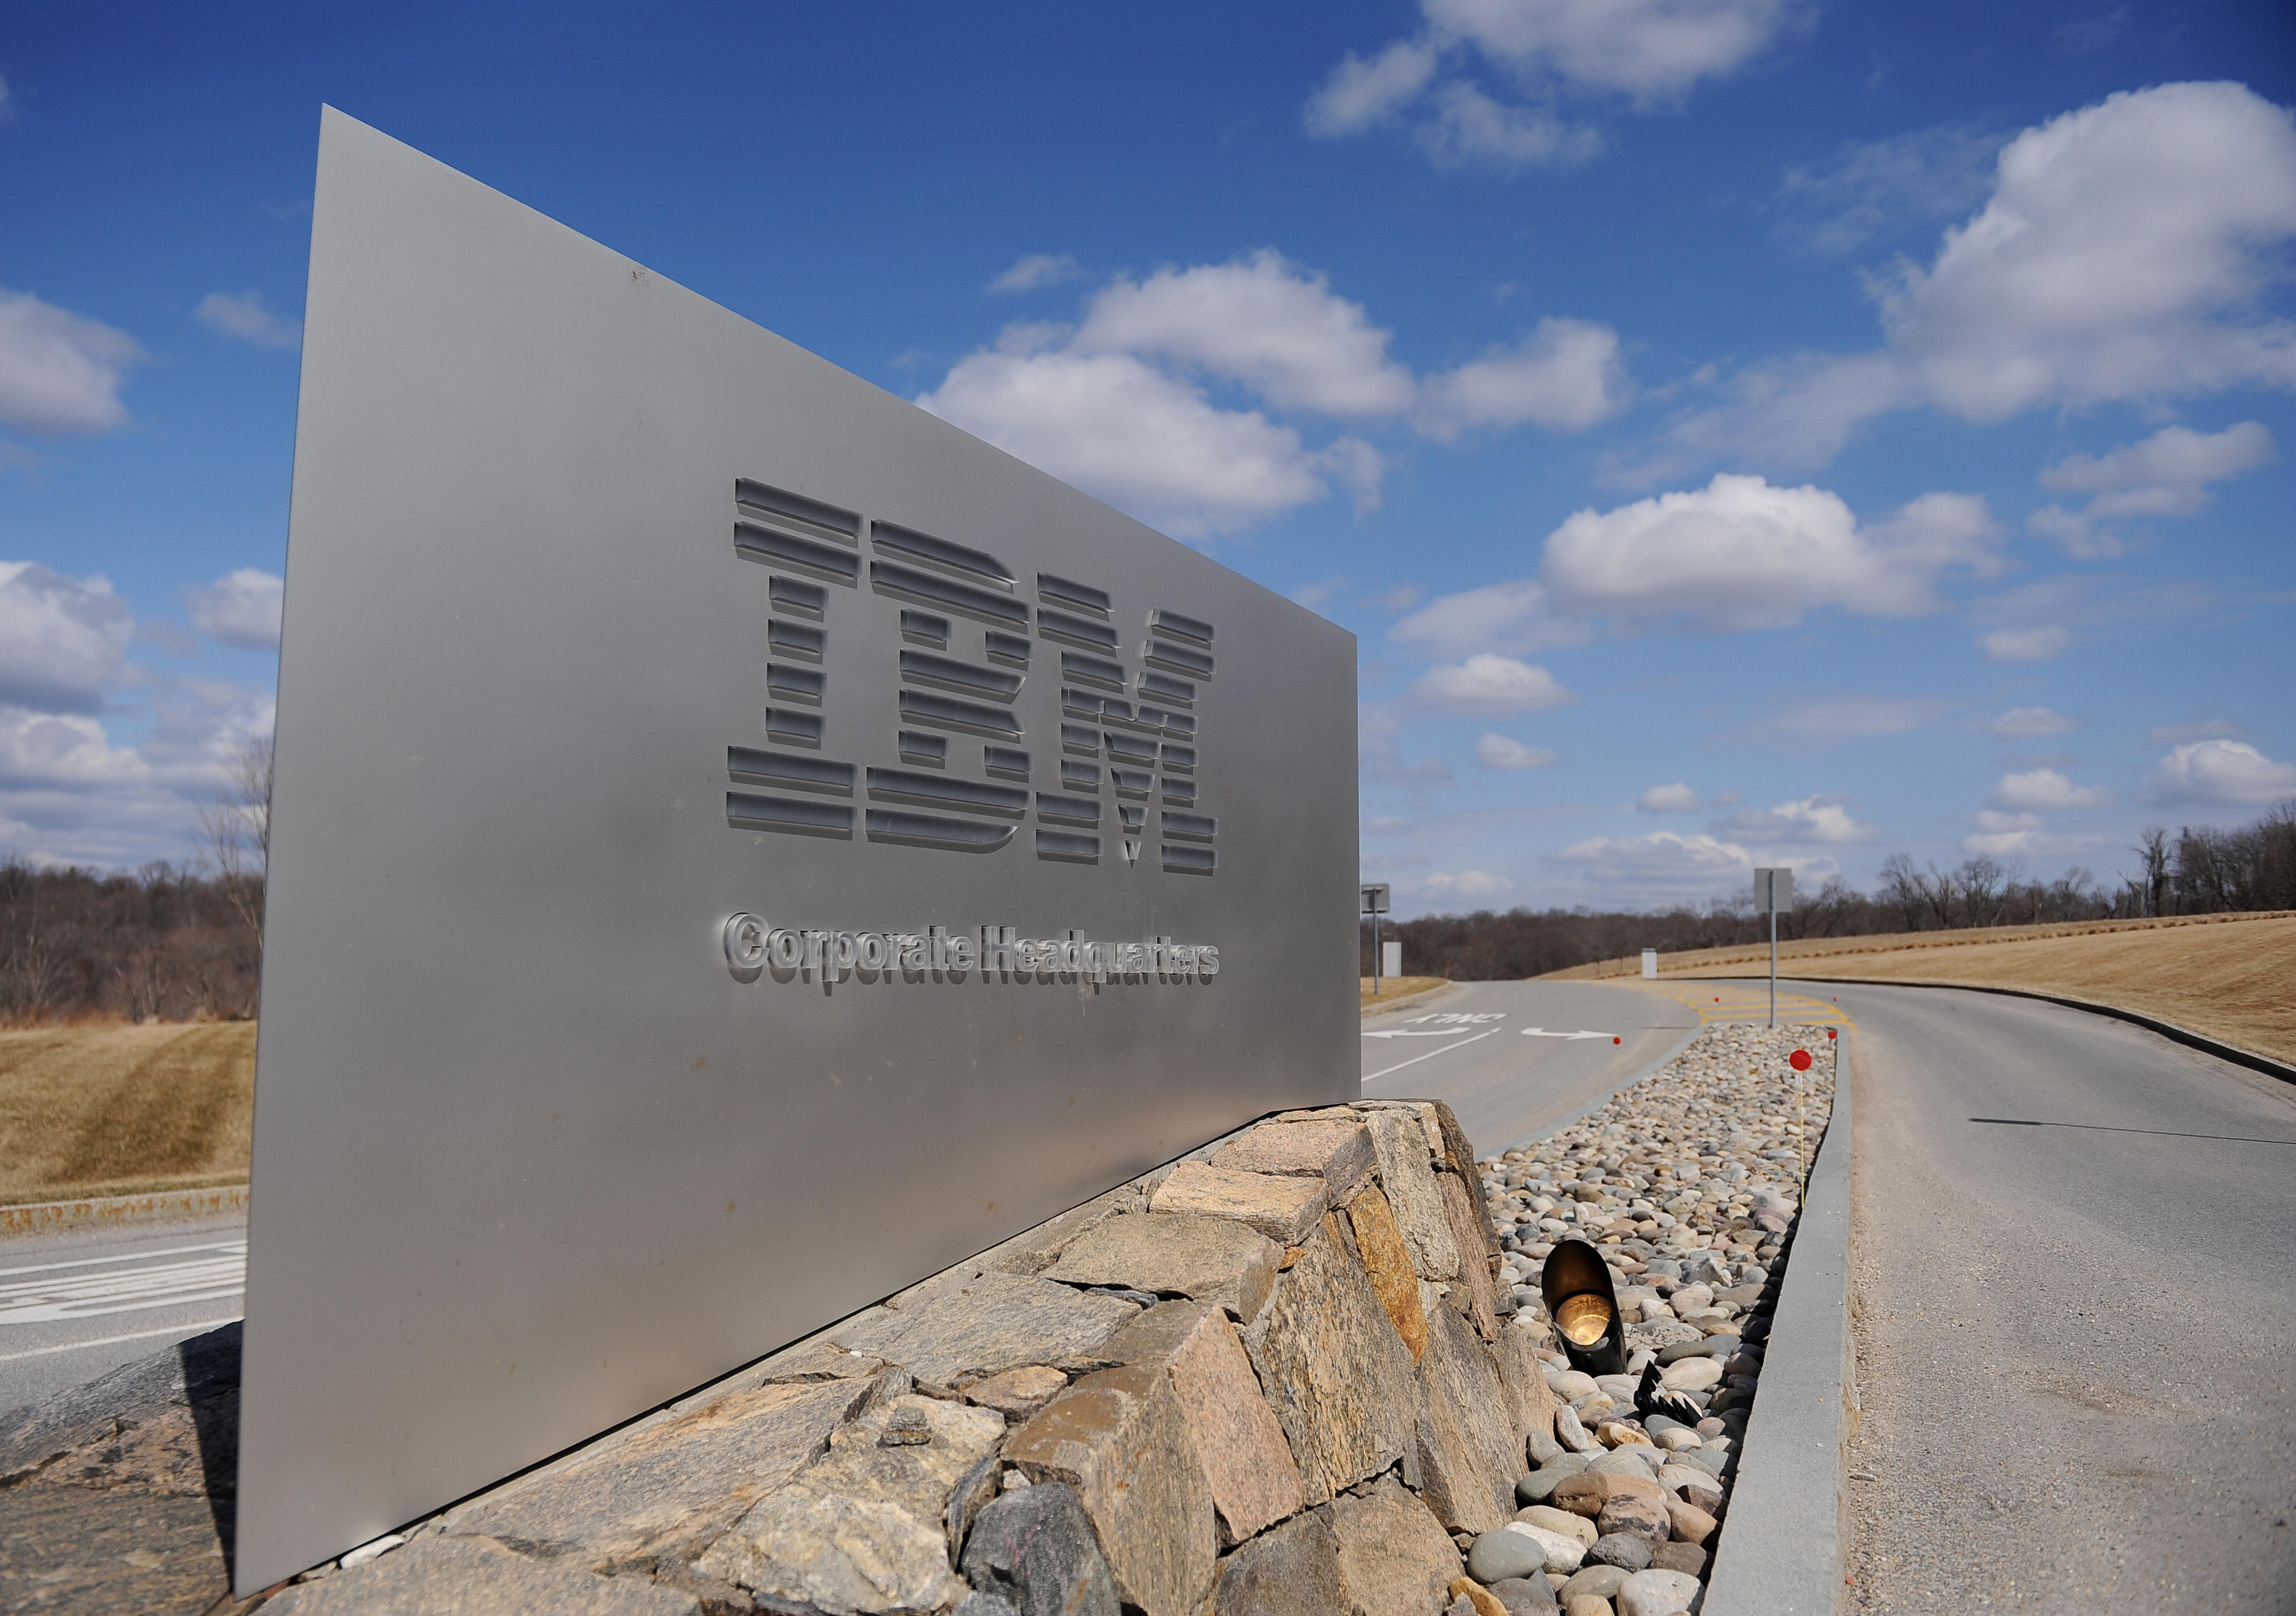 IBM tells U.S. employees they will return to the office in September